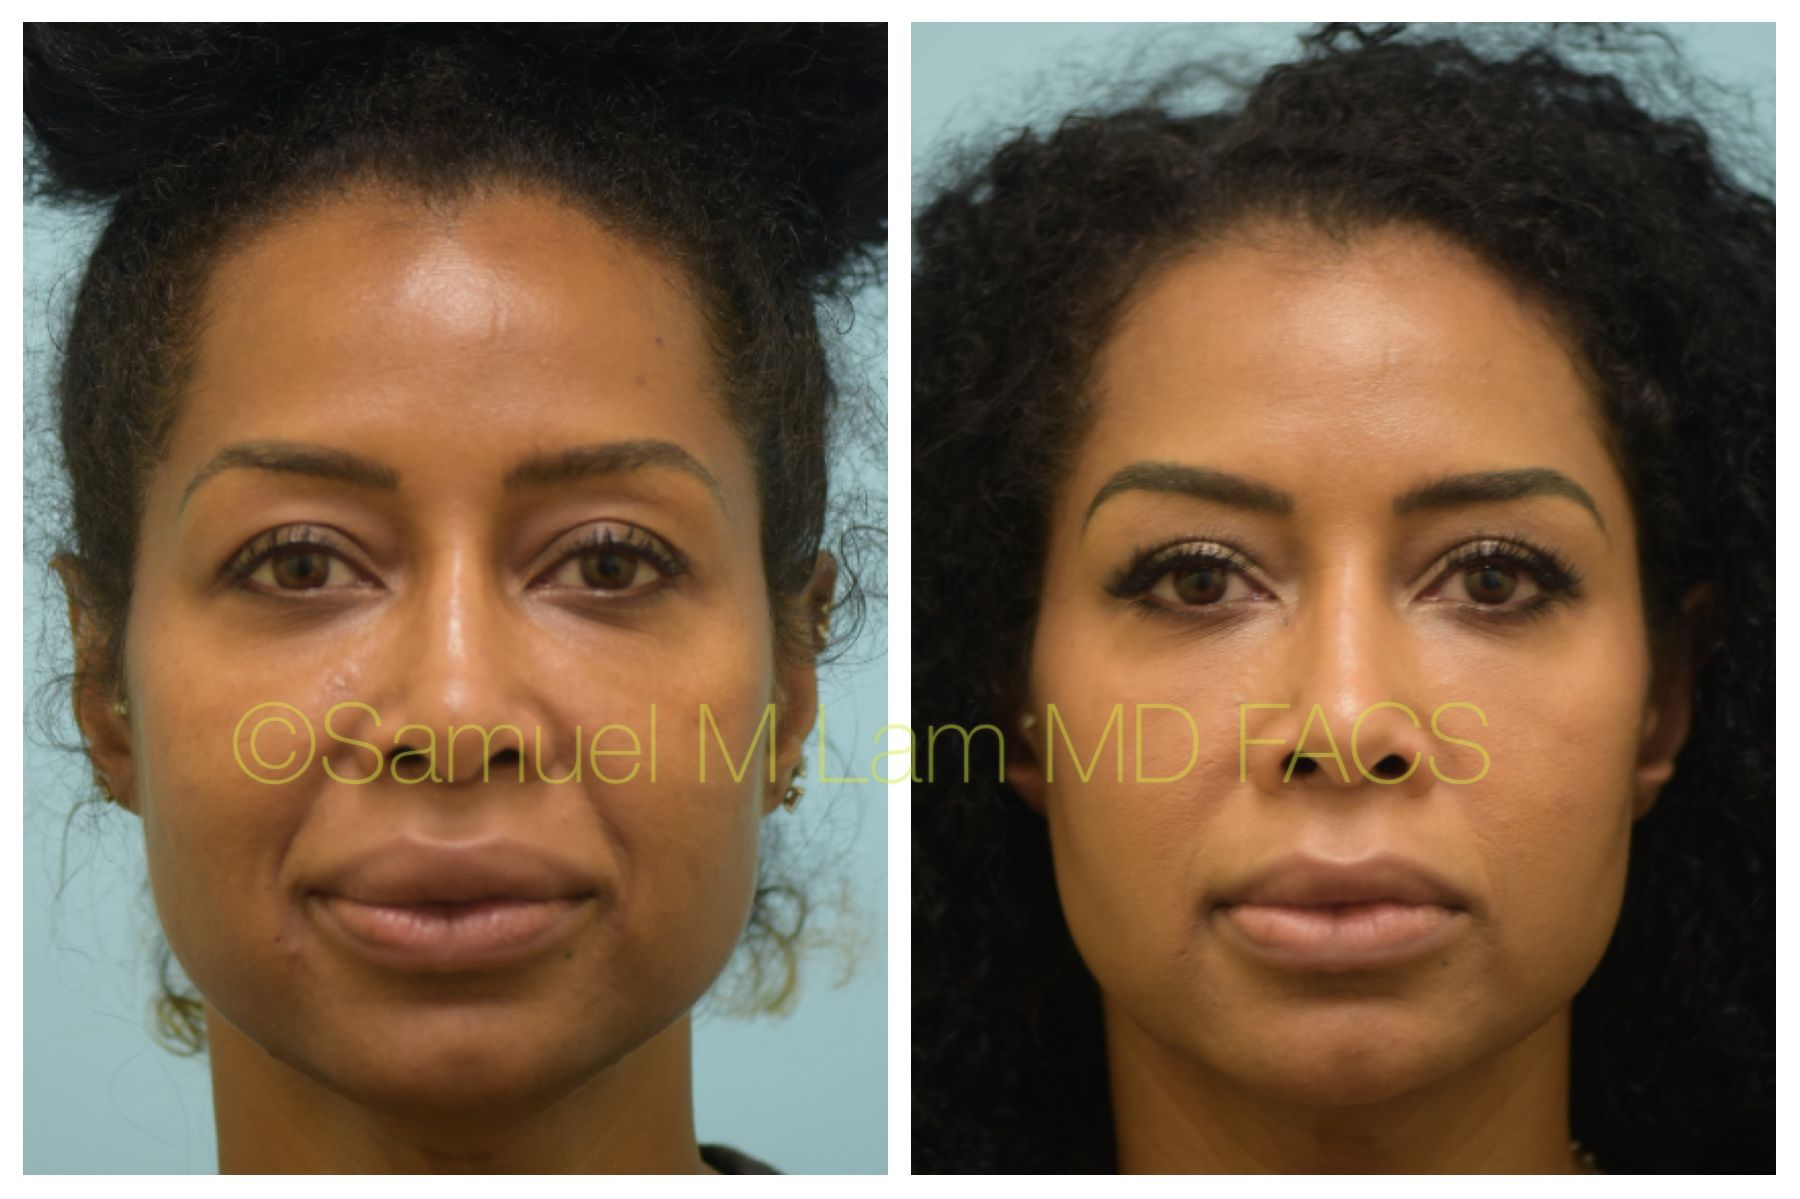 This African-American woman is shown before and 5 months